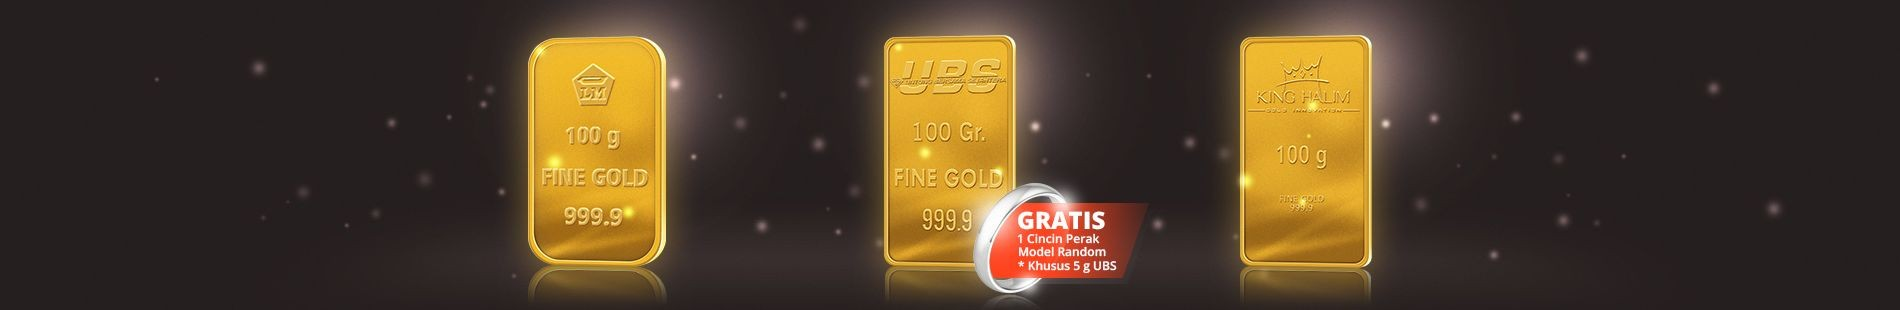 Indo Gold